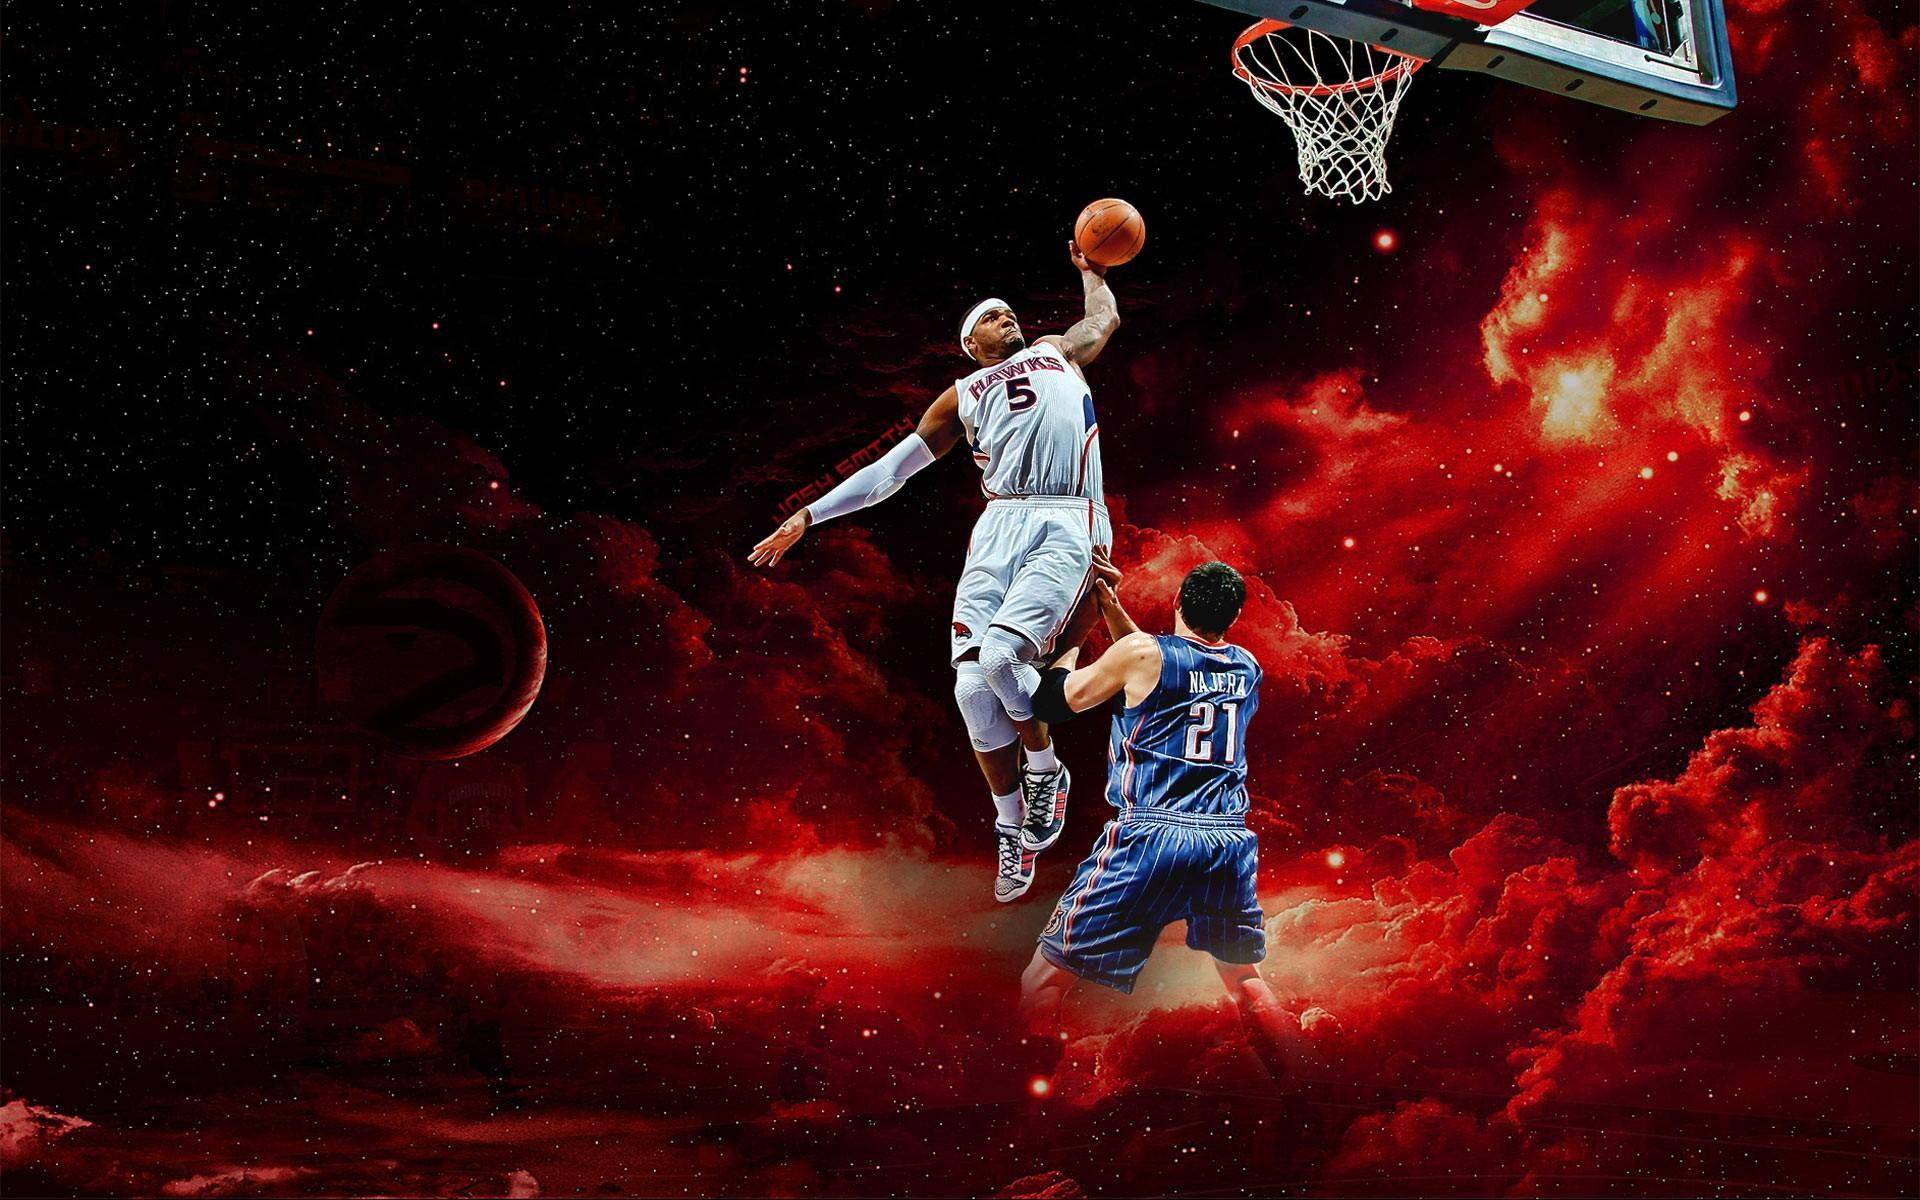 Nba Wallpapers Hd Nba 4k Backgrounds For Android Apk Download